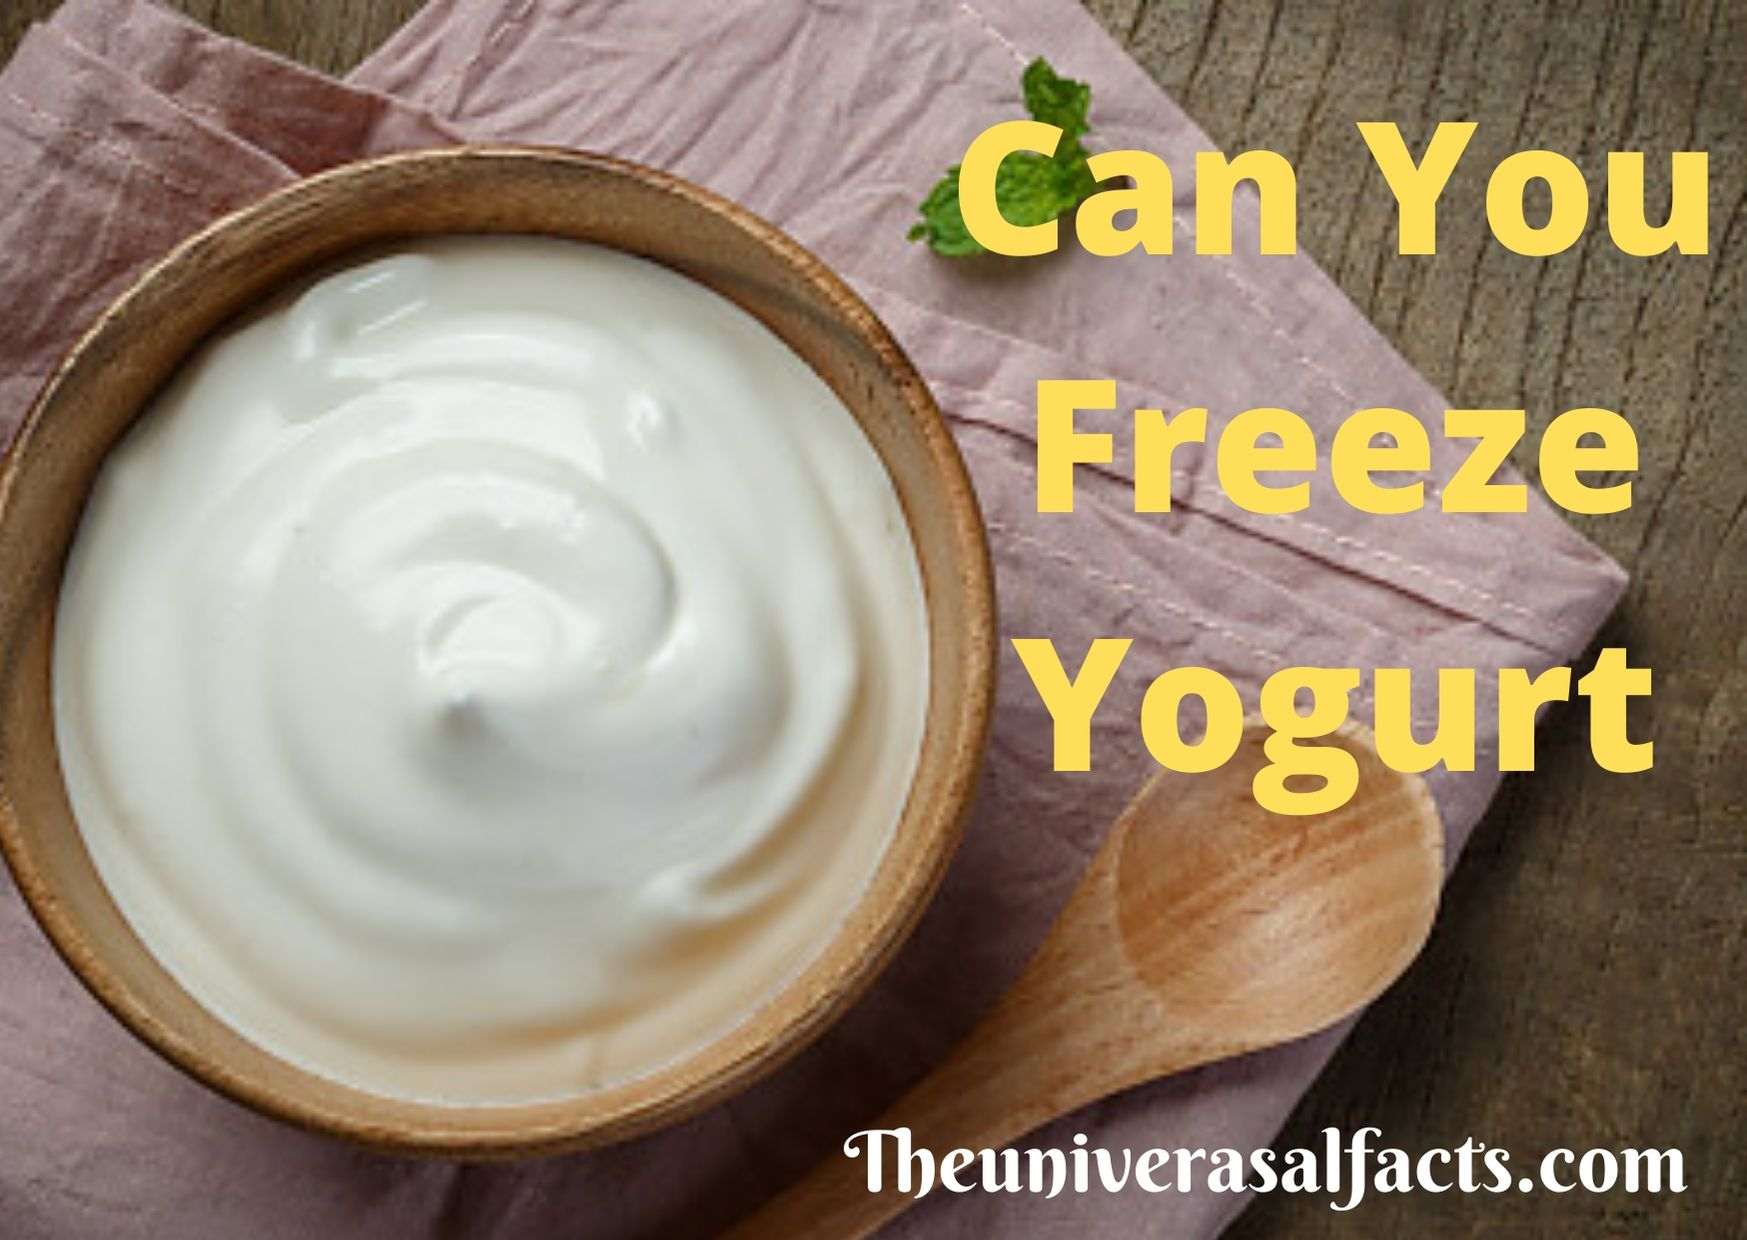 Can You Freeze Yogurt